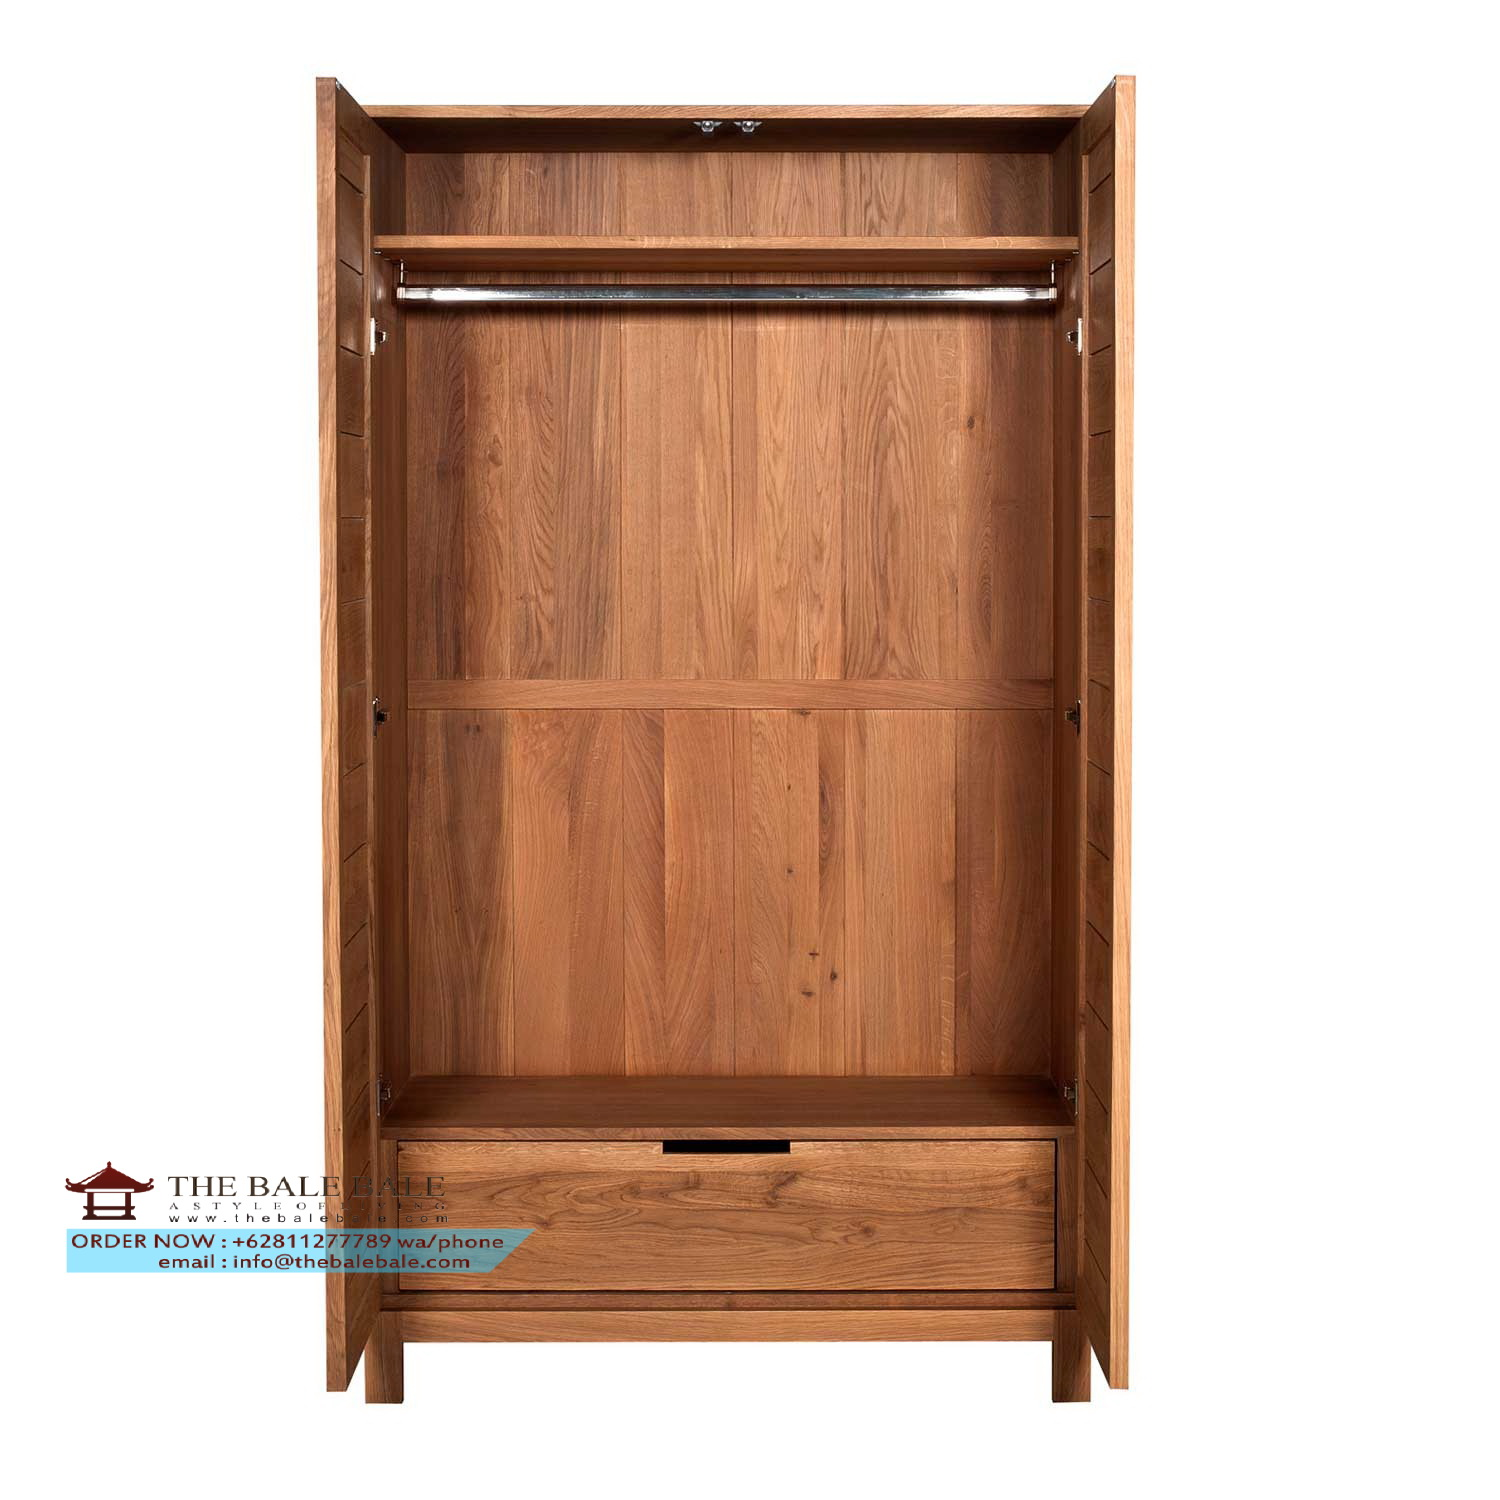 oak-azur-bedroom-wardrobe-open